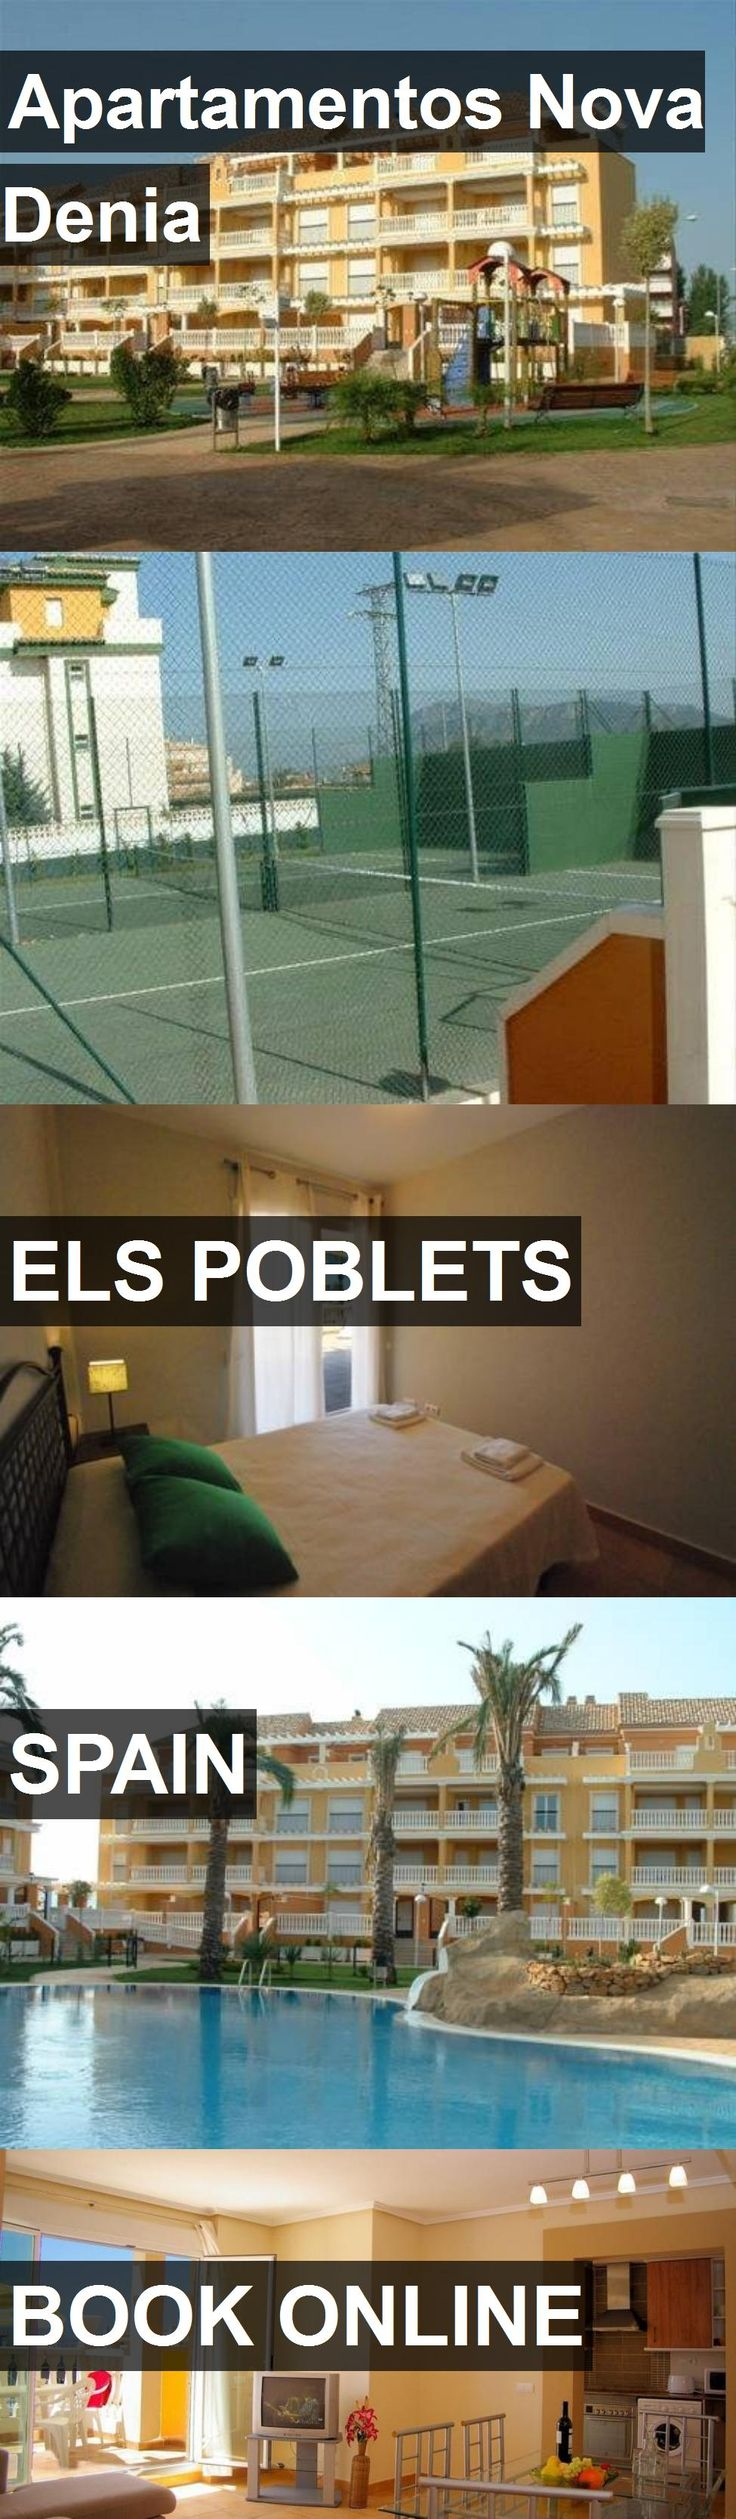 Hotel Apartamentos Nova Denia in Els Poblets, Spain. For more information, photos, reviews and best prices please follow the link. #Spain #ElsPoblets #travel #vacation #hotel